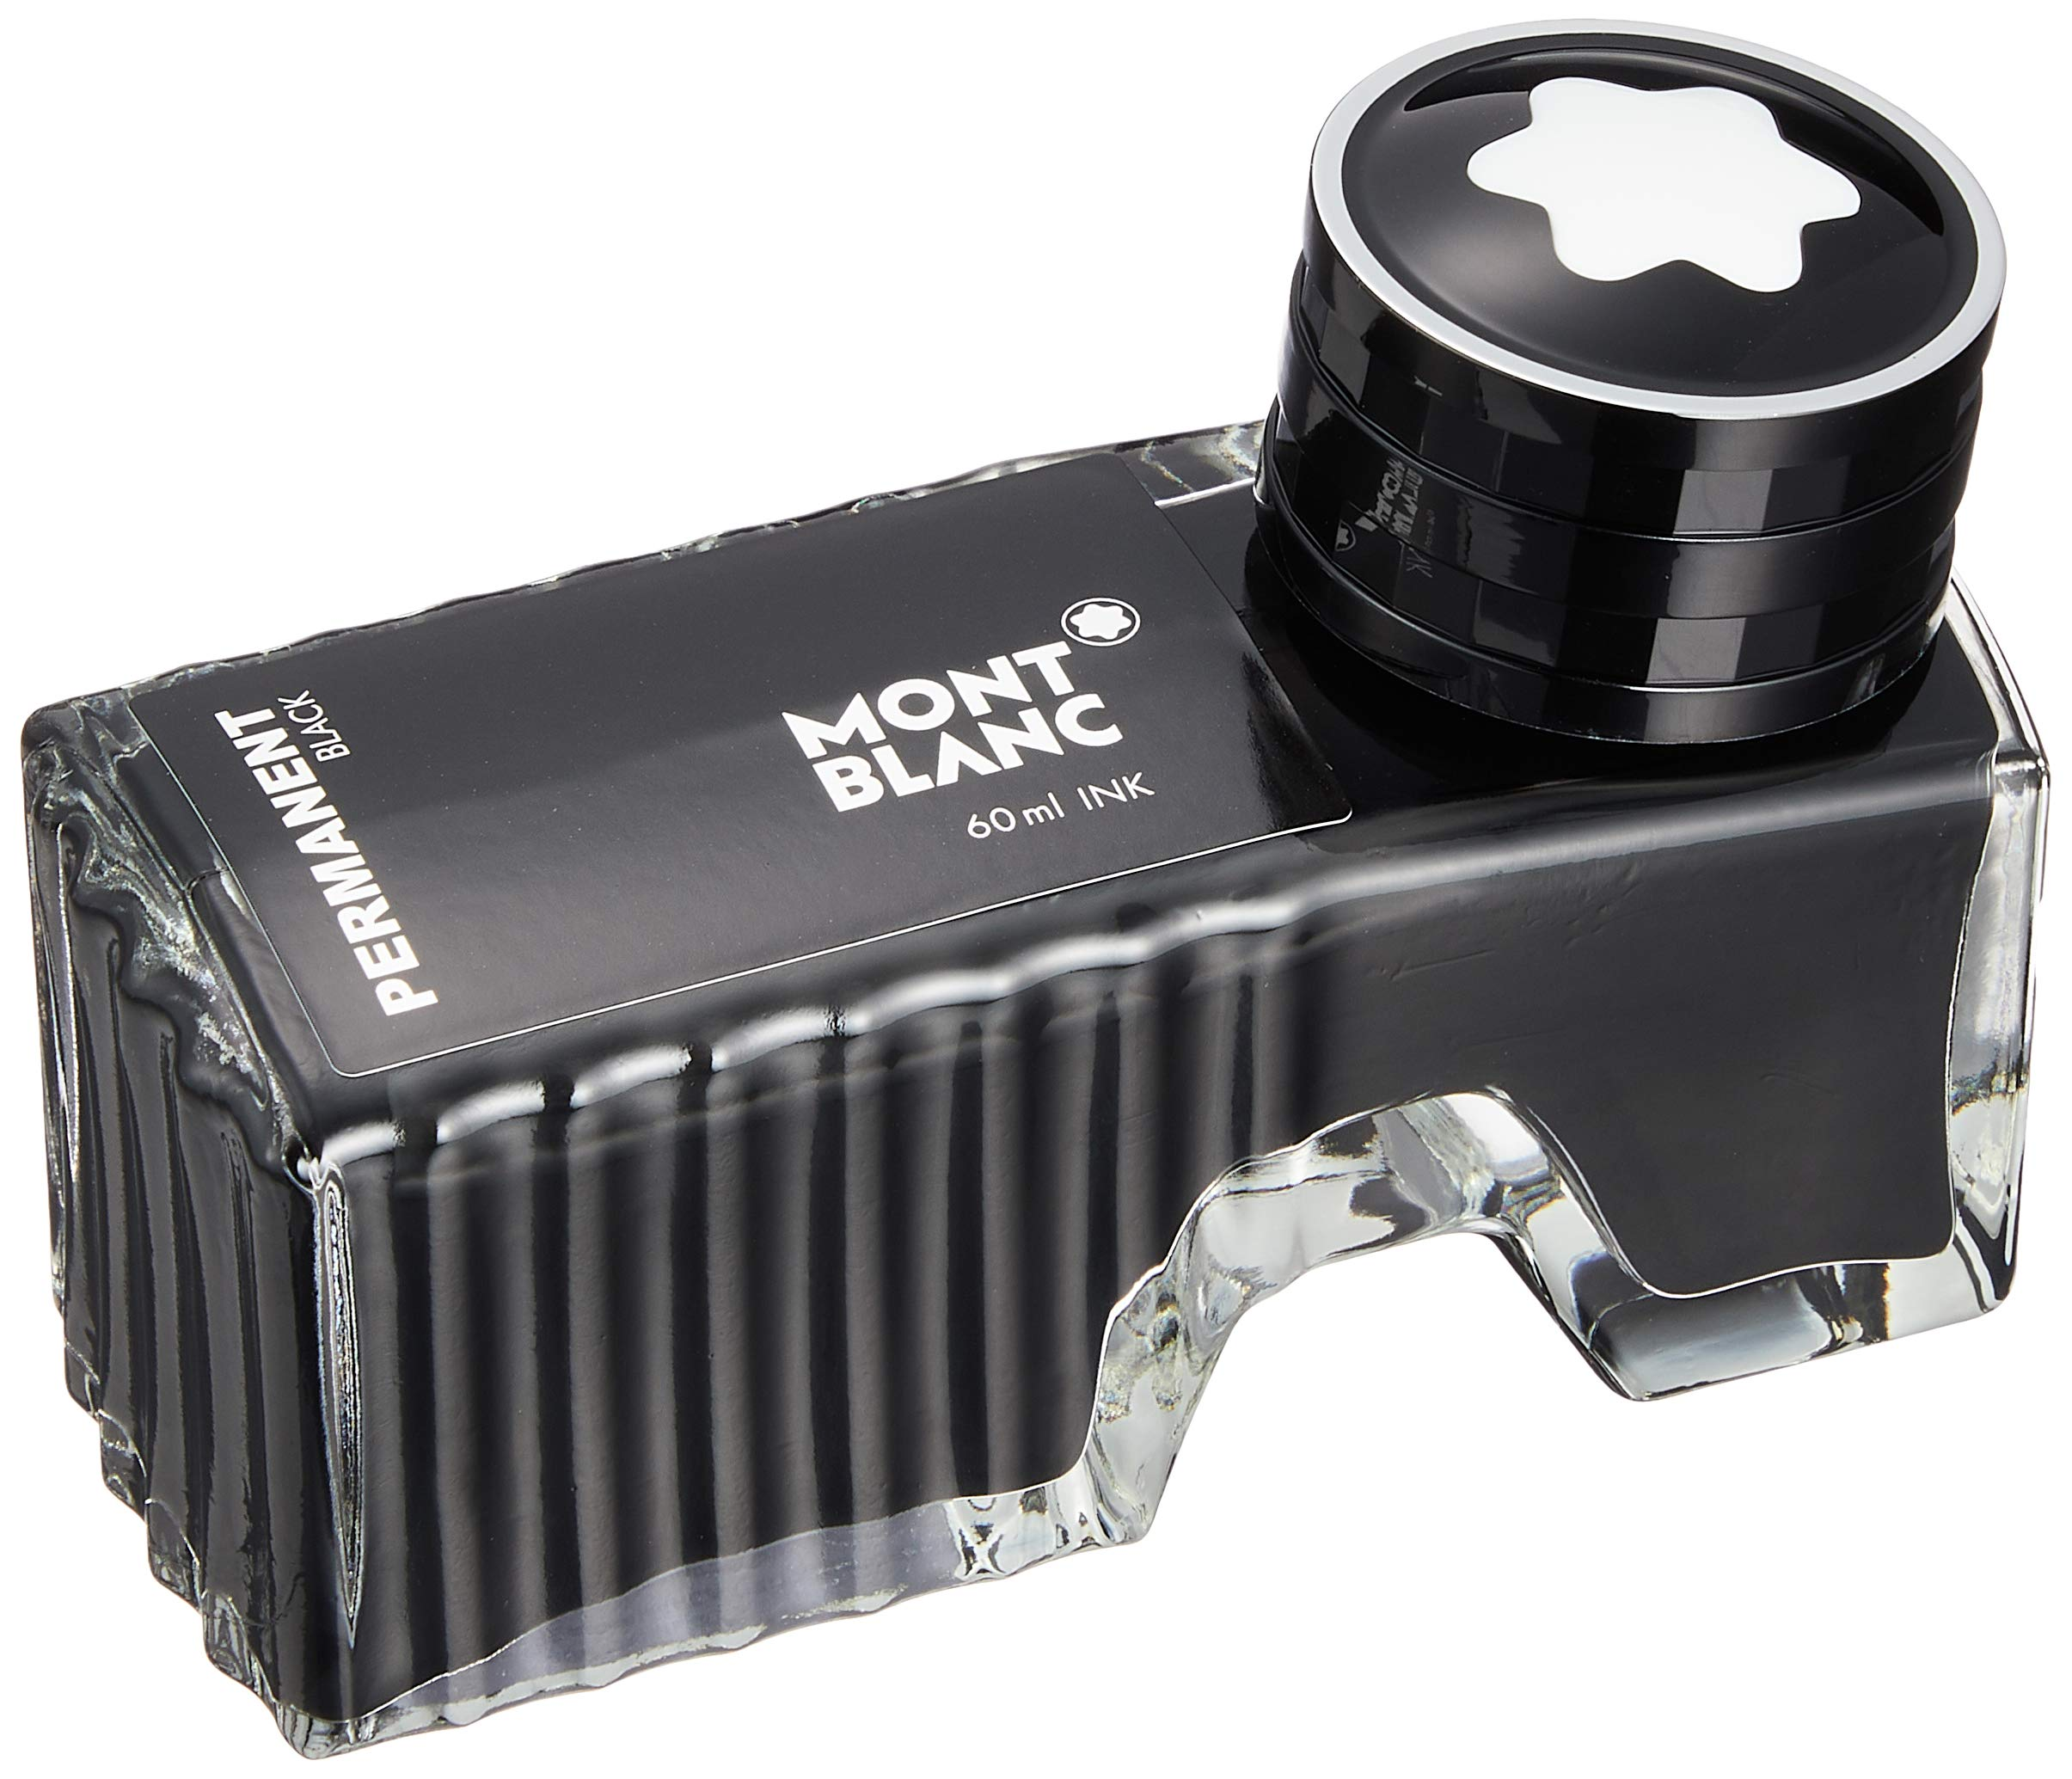 Montblanc Ink Bottle Permanent Black 107755 – Document-Proof Refill Ink in Black for Fountain Pens, Quills, and Calligraphy Pens – 60ml Inkwell by MONTBLANC (Image #1)